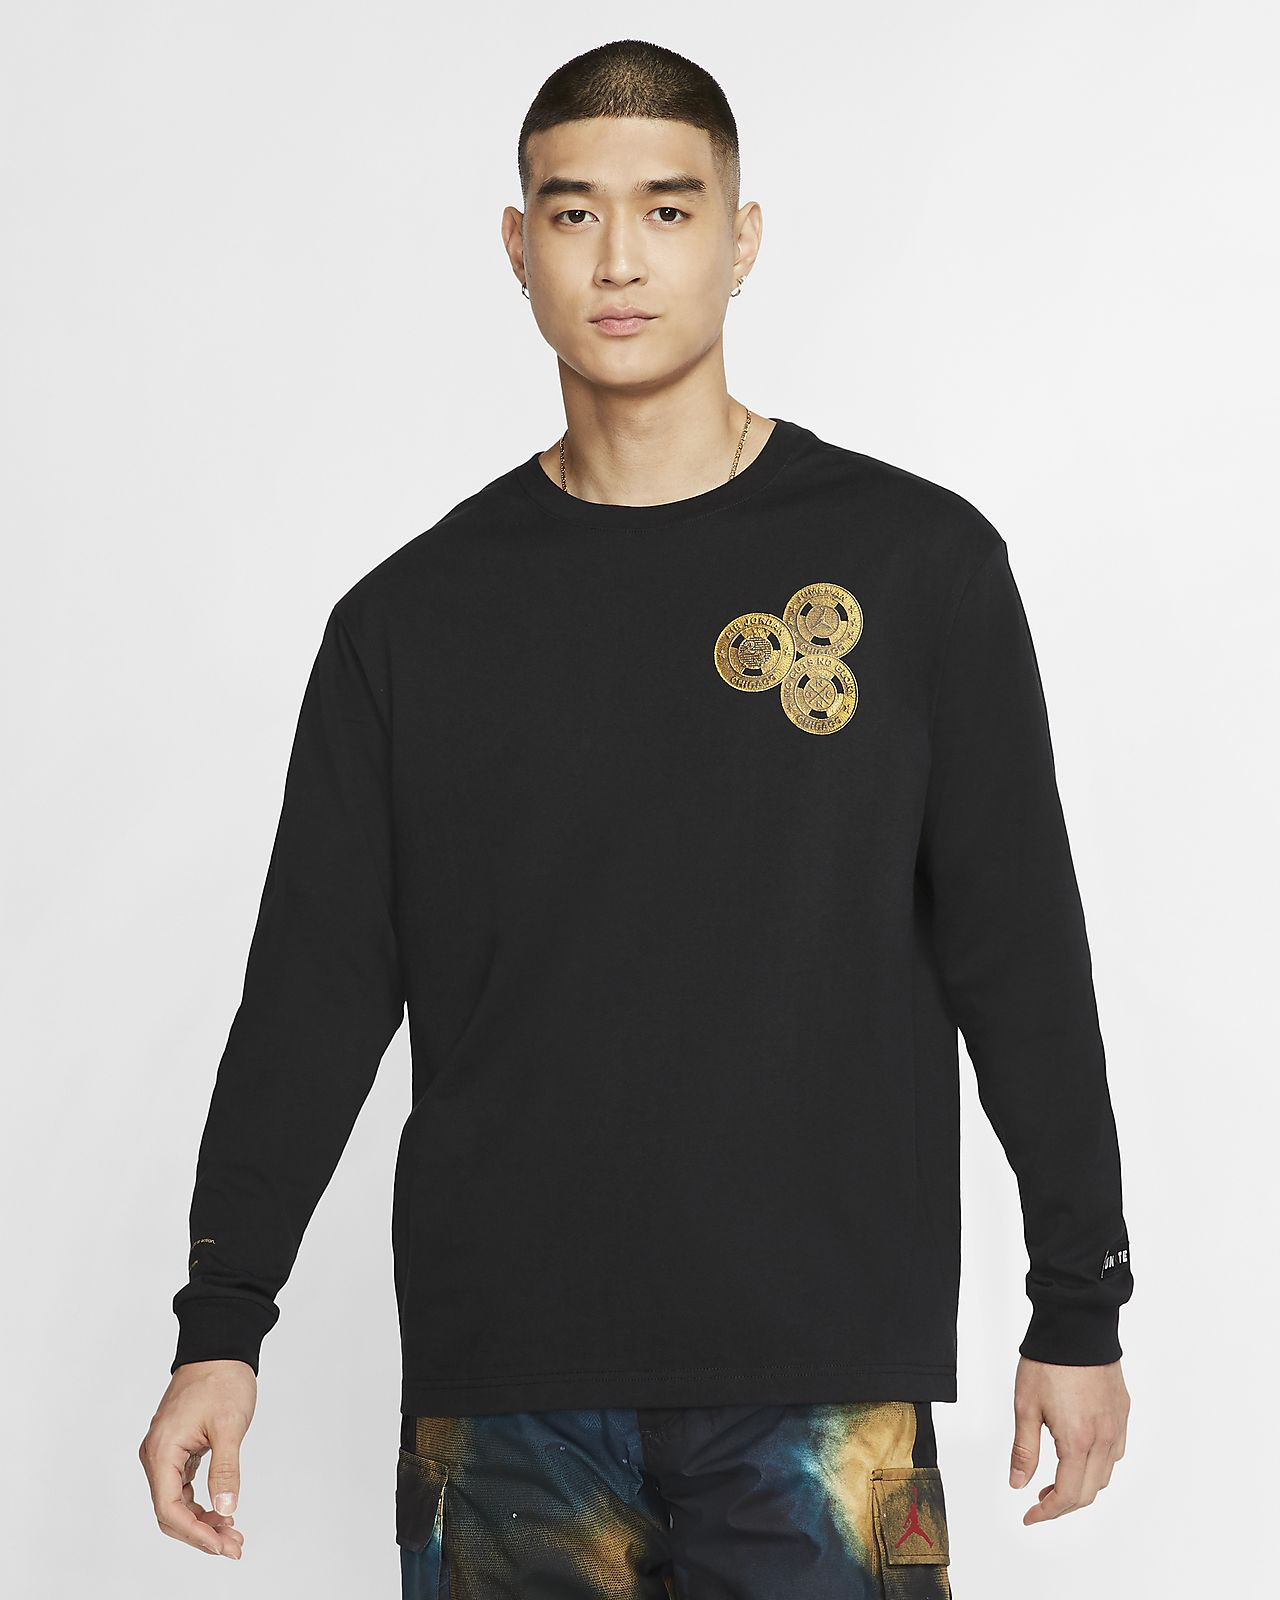 Drew The Barber: The Jordan Chicago Collaborators' Collection Men's Long-Sleeve T-Shirt